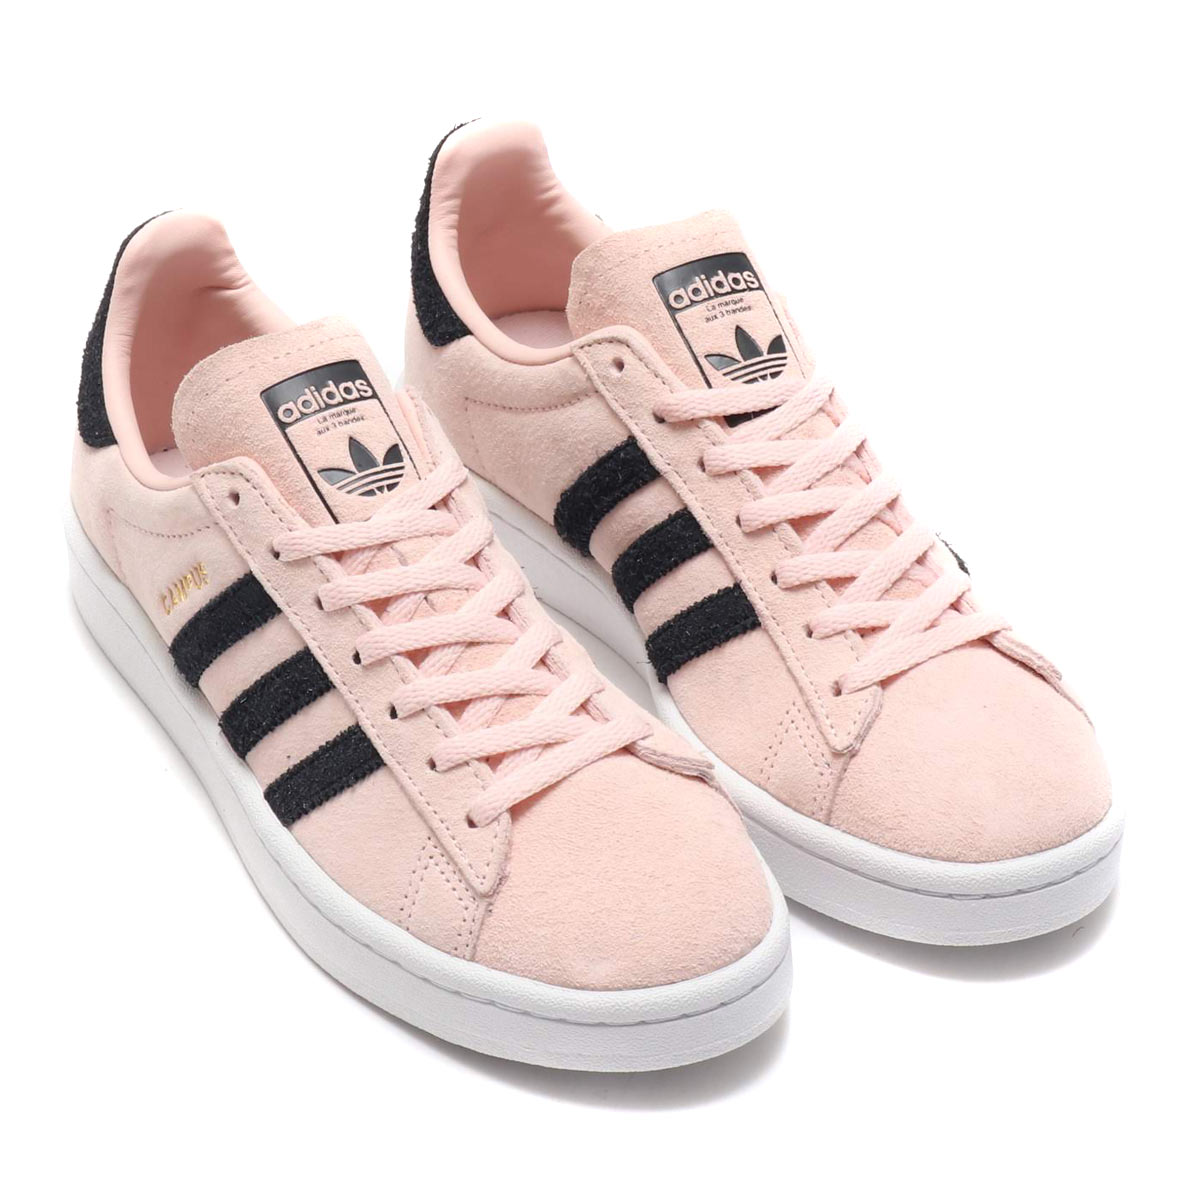 adidas Originals CAMPUS W (Adidas original scan pass W) ICEY PINKCORE BLACKCRYSTAL WHITE 18FW I